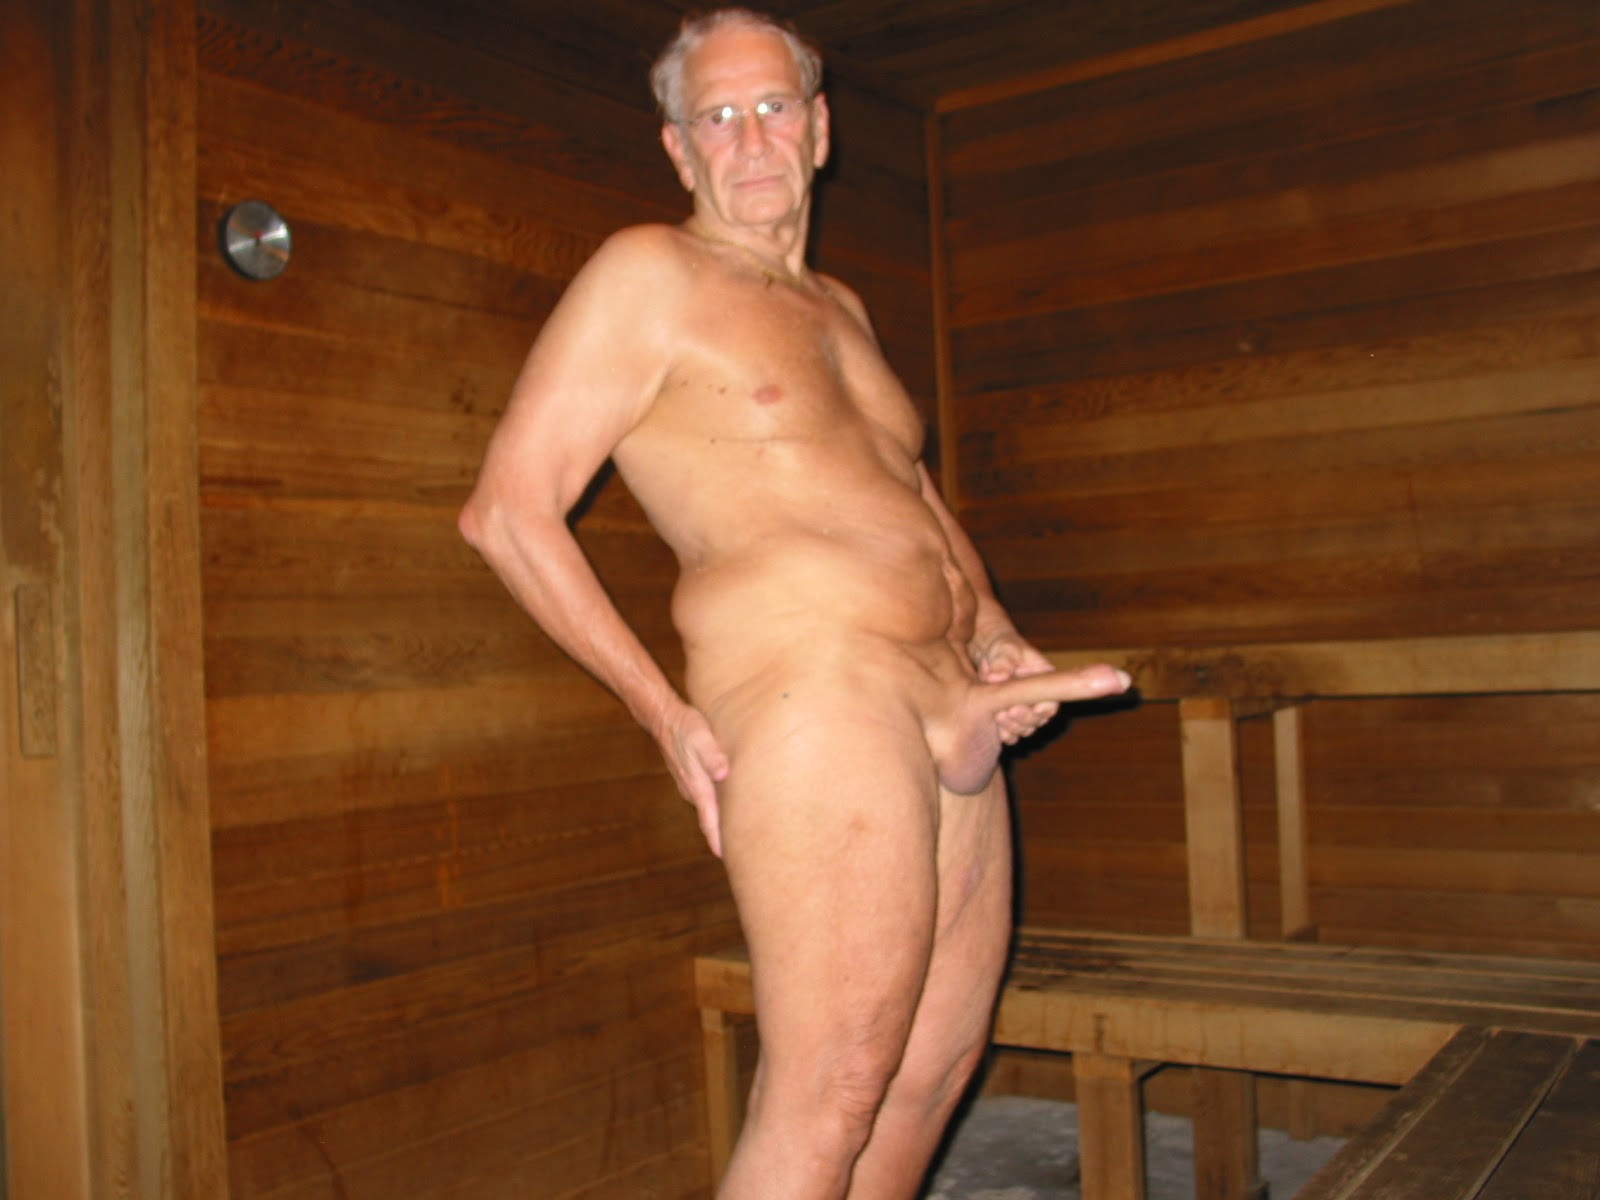 Commit Men in saunas nude accept